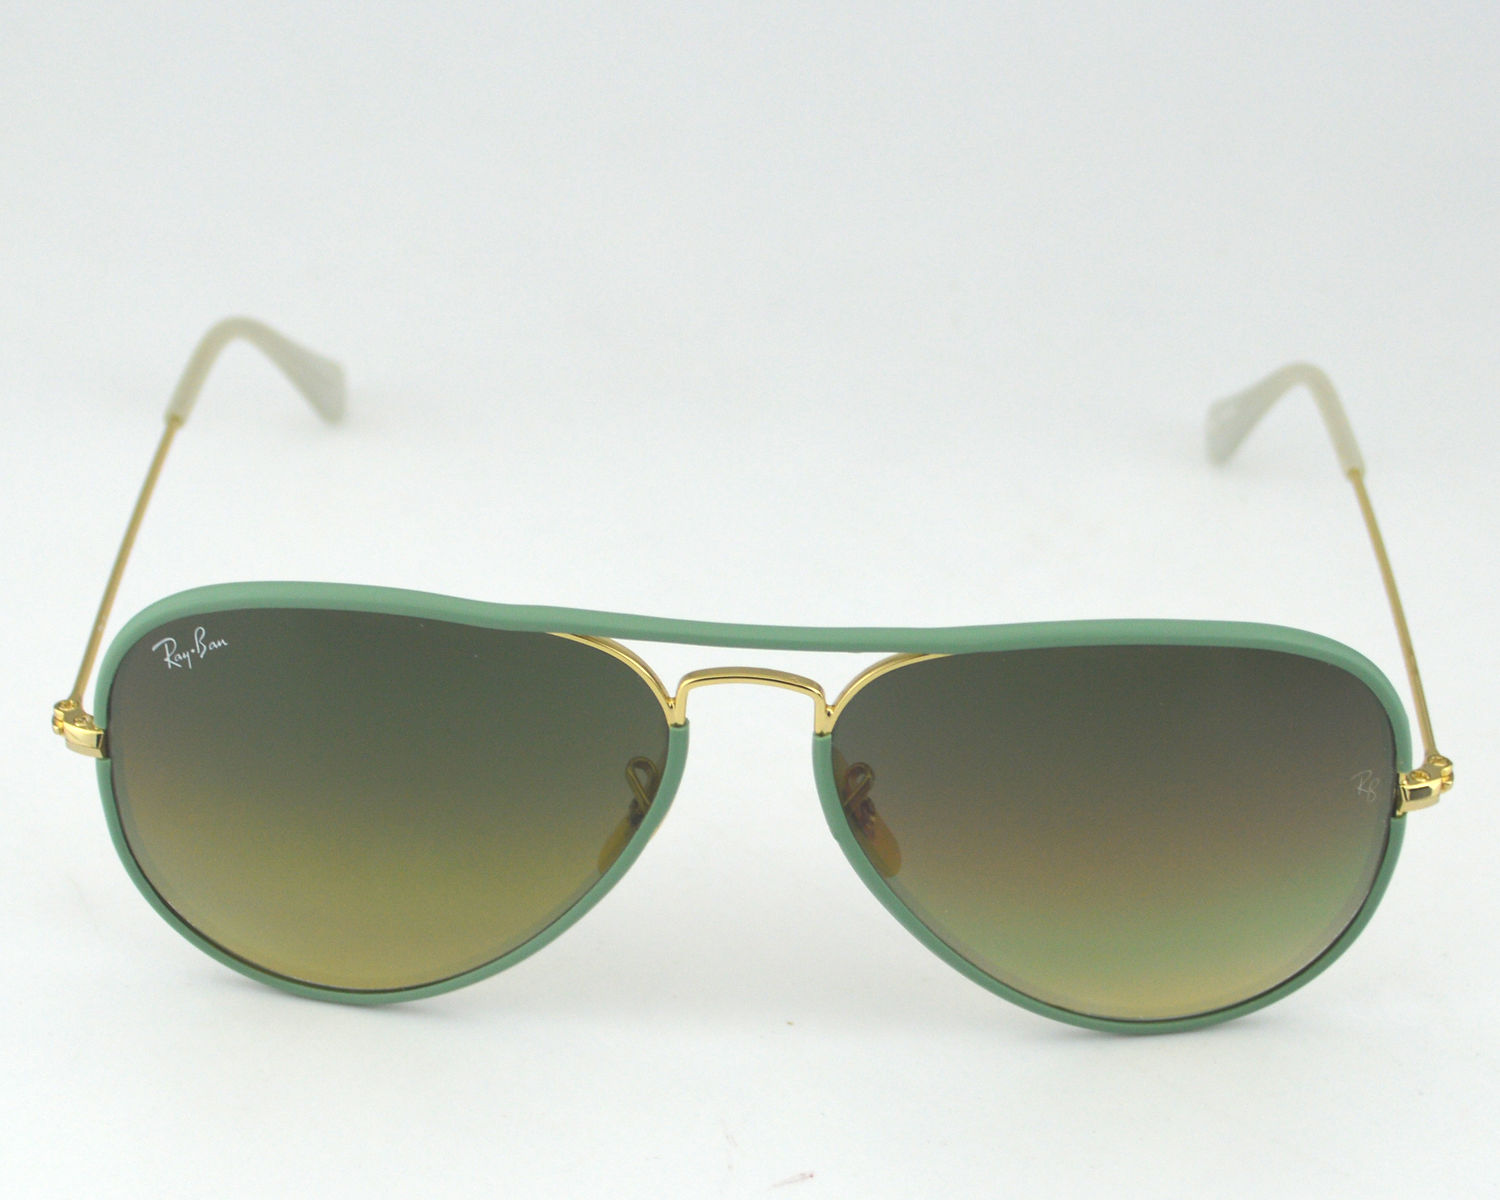 ff3c7f97c04 Ray Ban RB 3025JM Aviator Full Color 001 3M Green Gradient Lens Unisex  Sunglasses 58mm